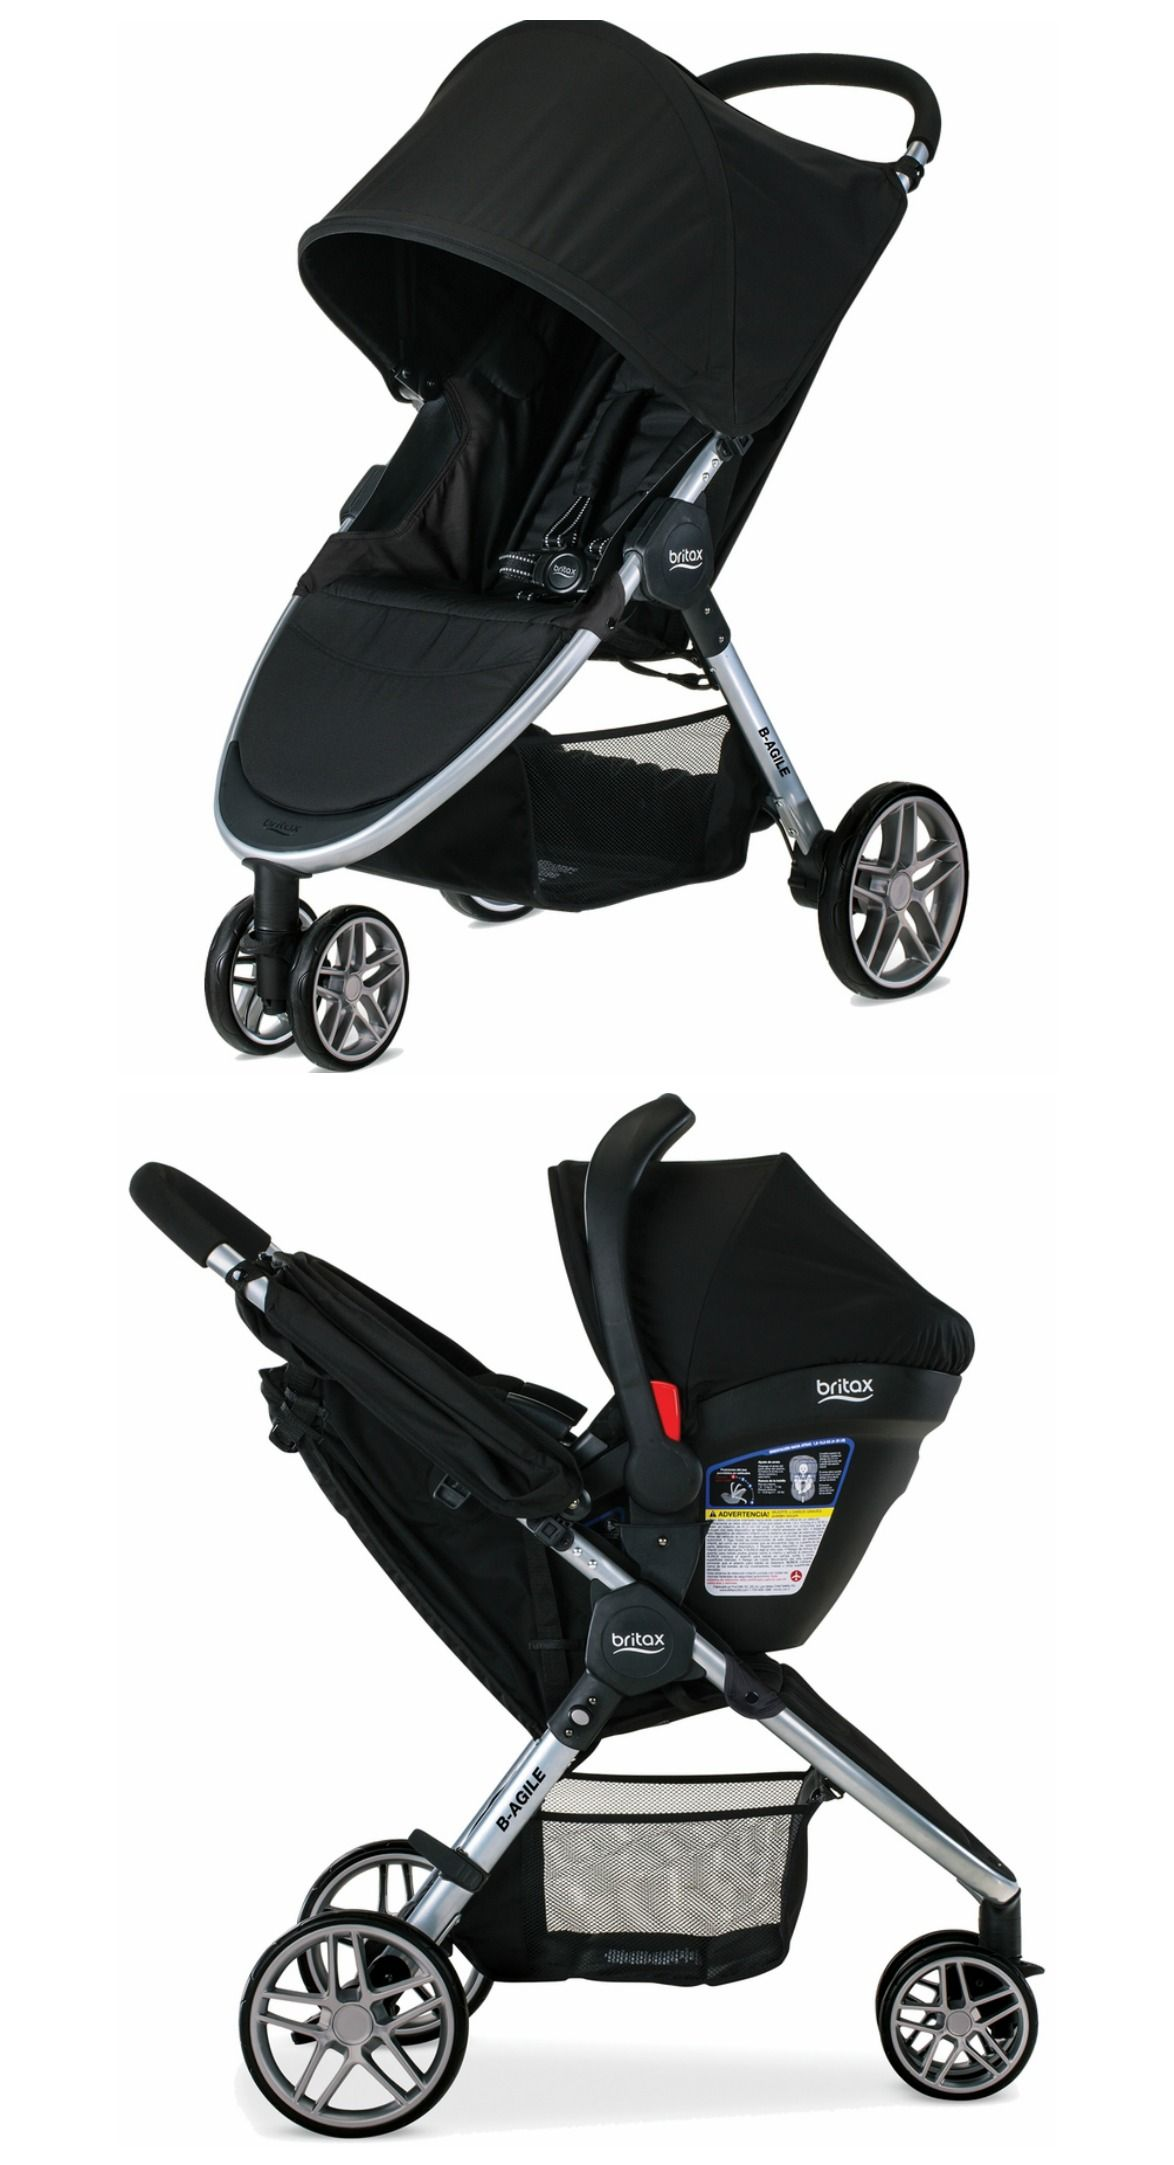 Our Top 10 Standard Strollers include the Britax 2016 B